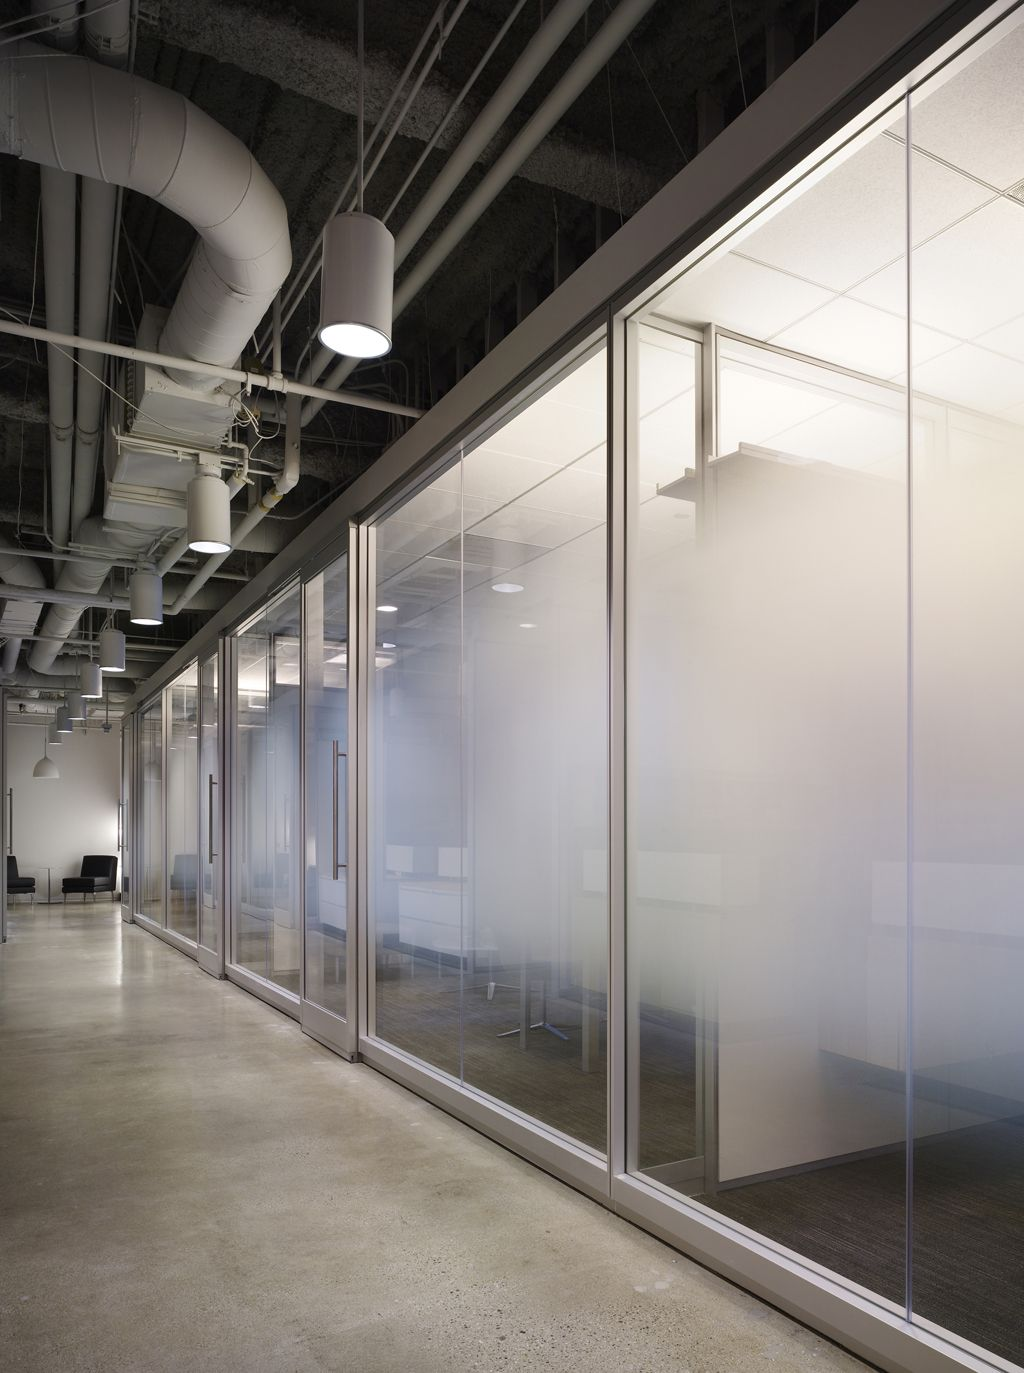 frosted glass provides privacy while allowing light to